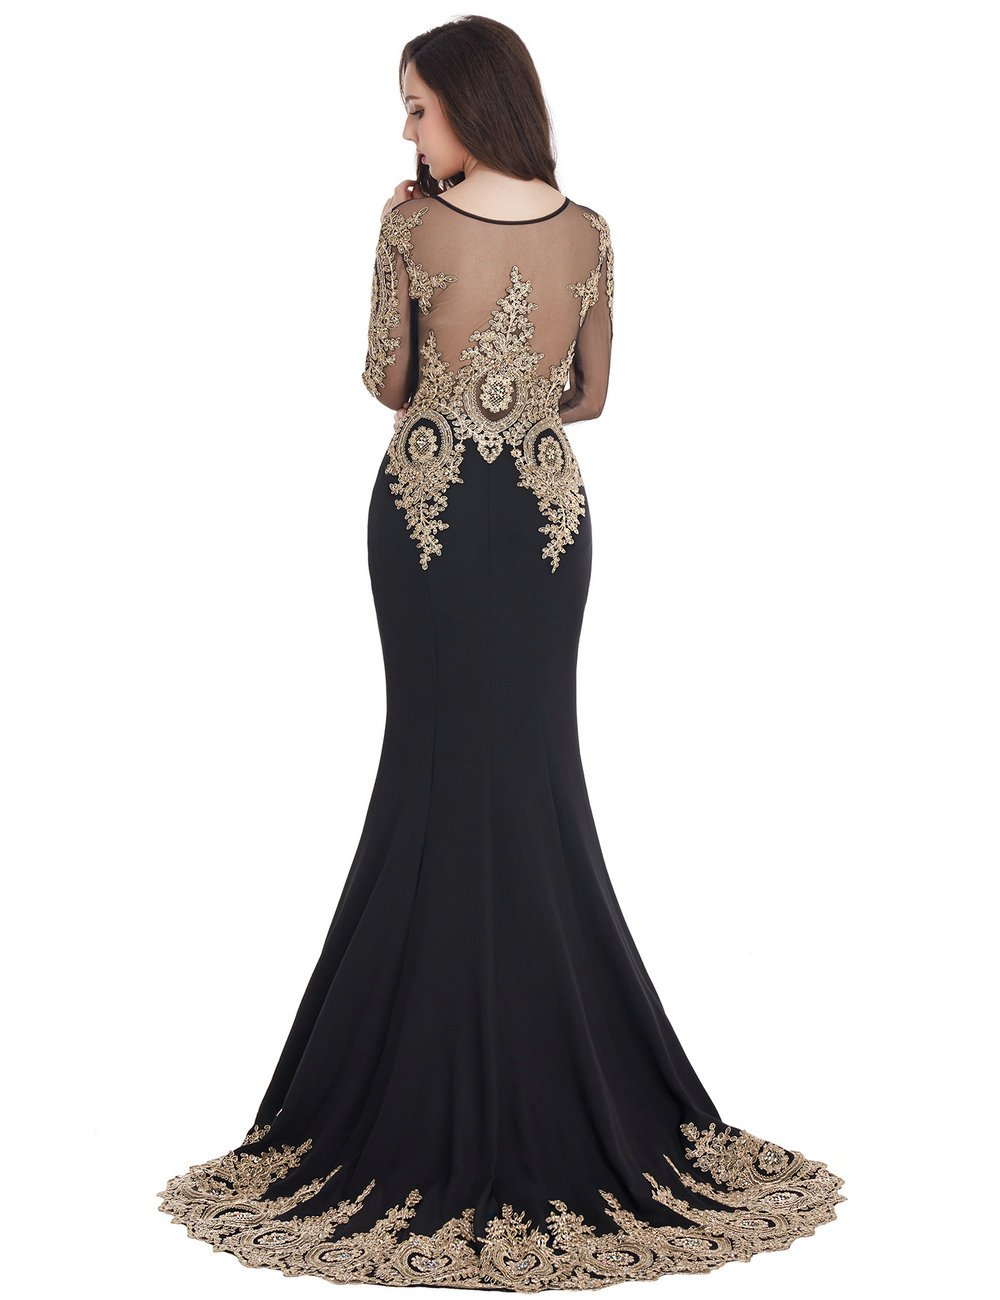 MisShow Black Mermaid Evening Dress for Women Formal Long Prom Dress 2017 by MisShow (Image #5)